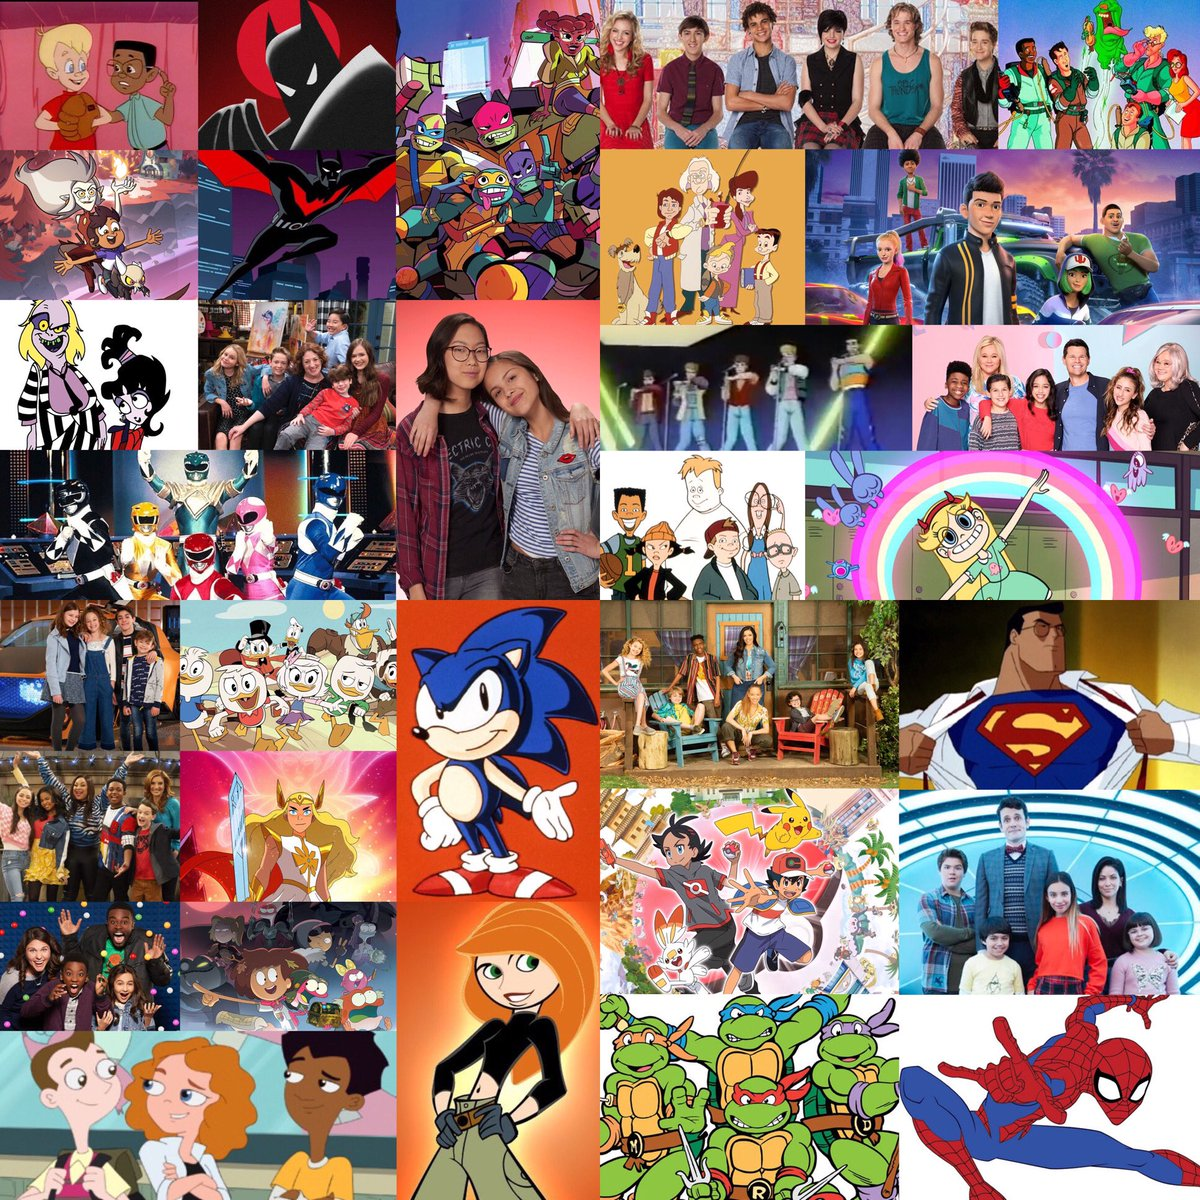 If you're watching some great TV on #SaturdayMorning, check out a collage of all your favorites past and present from your childhood one at a time.   Recognize any of 'em? 📺  @Marvel @WildBrainHQ @WBLooneyTunes @UniversalPics @tbirdent #cartoons #liveaction https://t.co/oU61XbhtPp